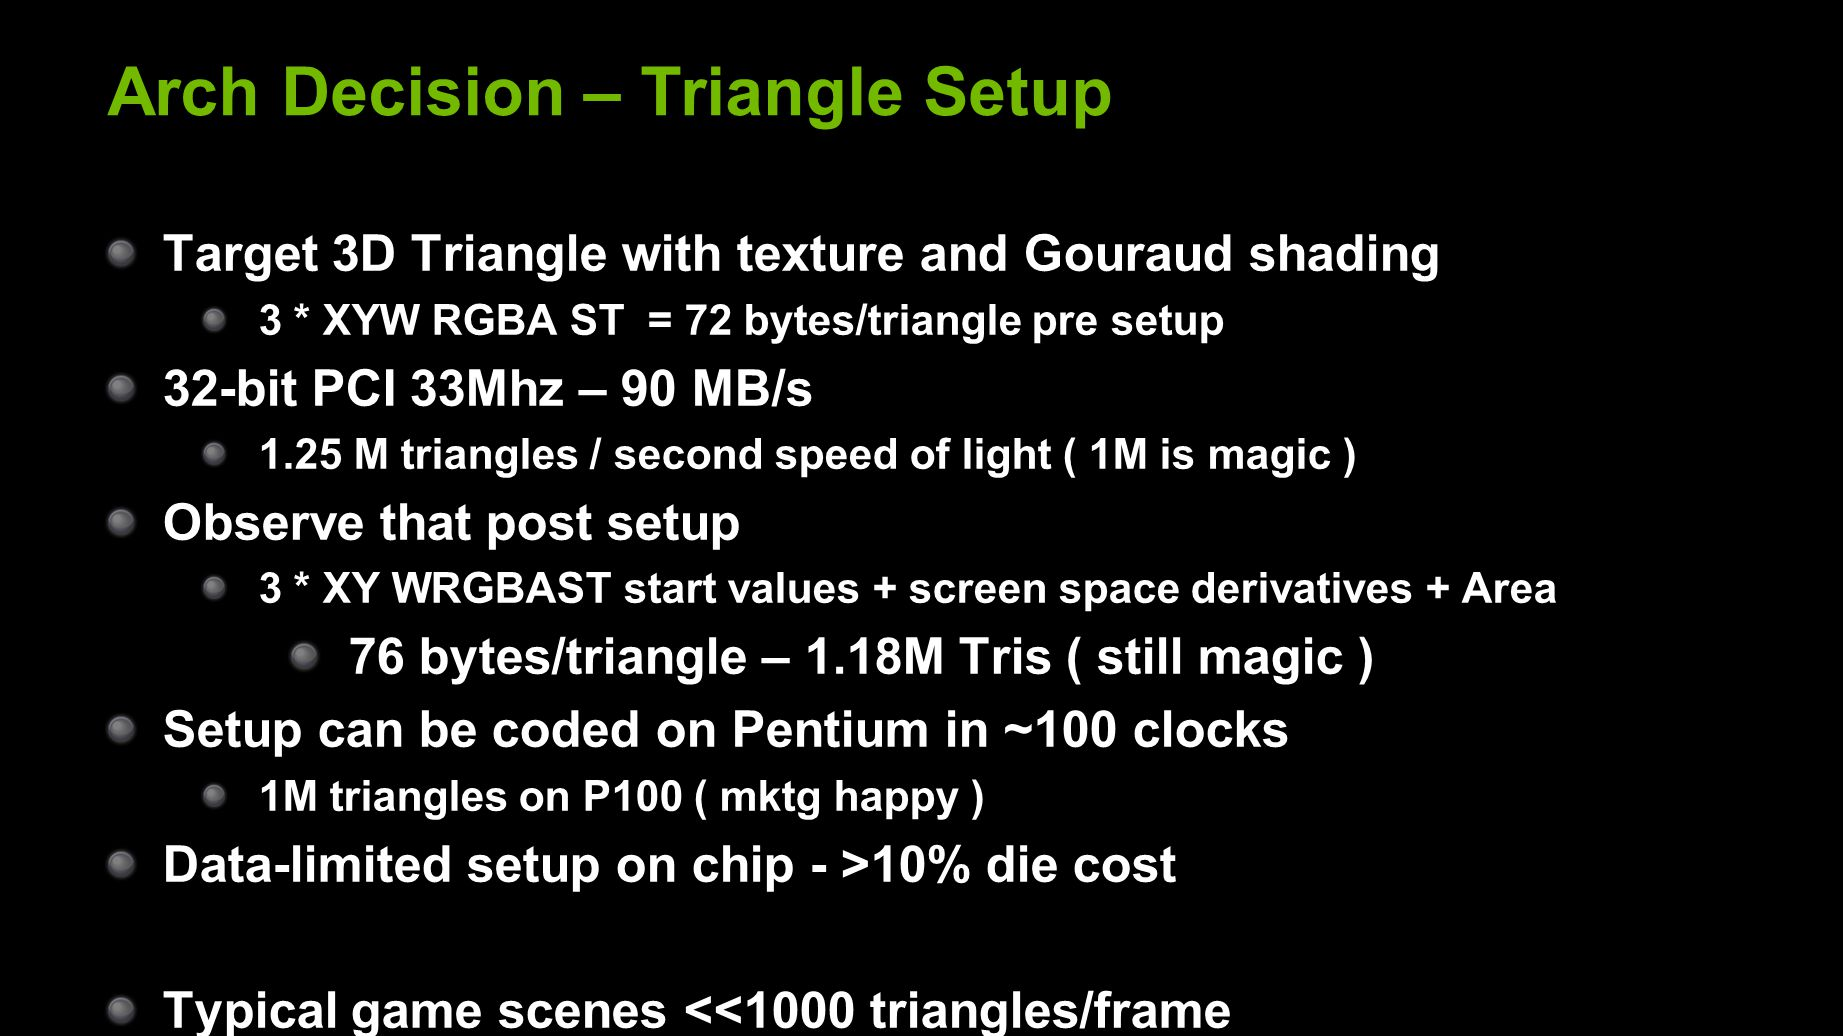 Arch Decision – Triangle Setup Target 3D Triangle with texture and Gouraud shading 3 * XYW RGBA ST = 72 bytes/triangle pre setup 32-bit PCI 33Mhz – 90 MB/s 1.25 M triangles / second speed of light ( 1M is magic ) Observe that post setup 3 * XY WRGBAST start values + screen space derivatives + Area 76 bytes/triangle – 1.18M Tris ( still magic ) Setup can be coded on Pentium in ~100 clocks 1M triangles on P100 ( mktg happy ) Data-limited setup on chip - >10% die cost Typical game scenes <<1000 triangles/frame